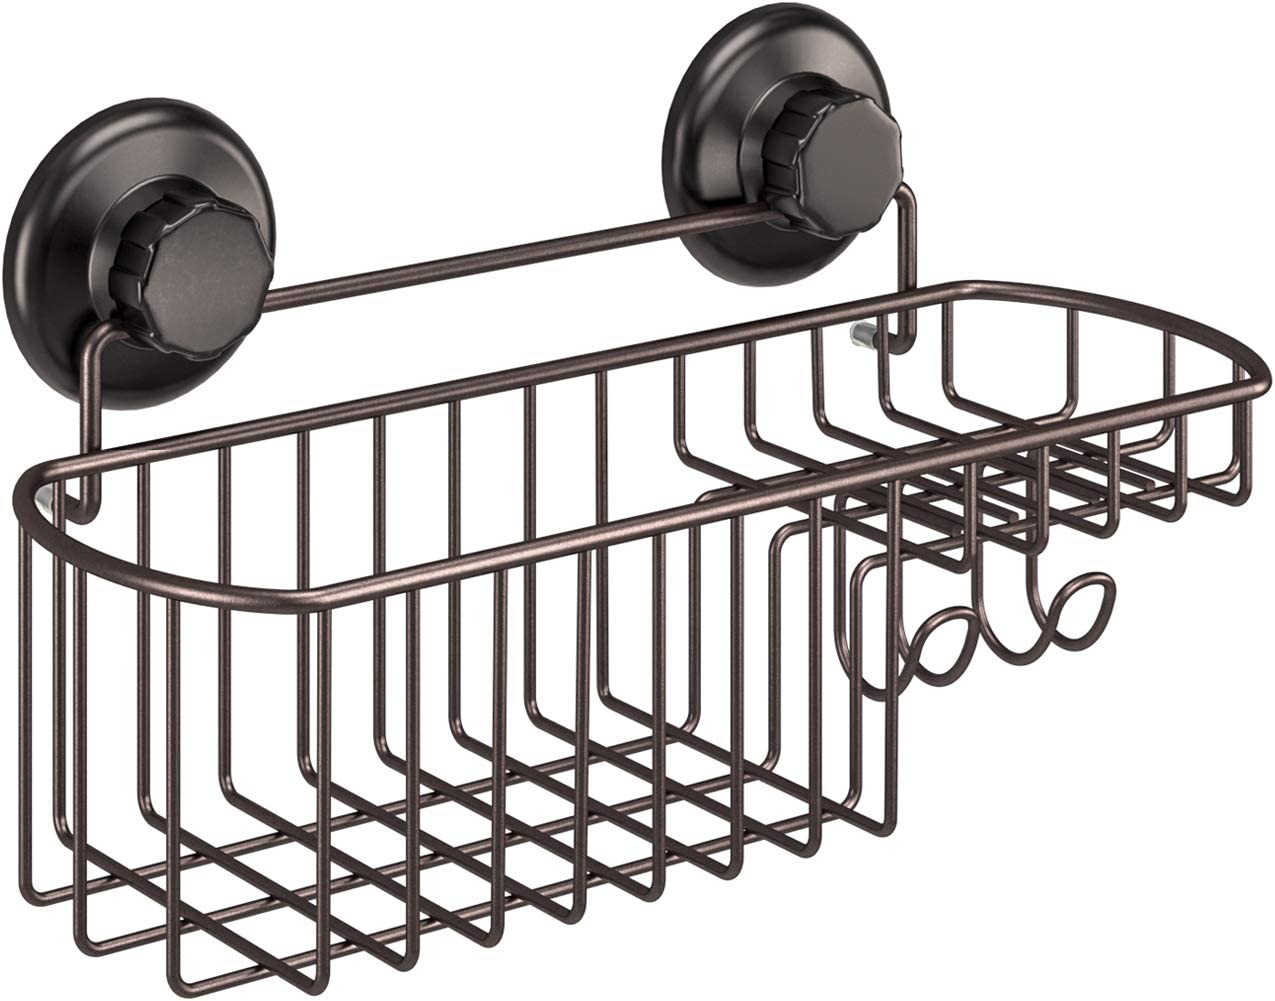 HASKO accessories - Powerful Vacuum Suction Cup Shower Caddy Basket for Shampoo - Combo Organizer Basket with Soap Holder and Hooks - Stainless Steel Holder for Bathroom Storage (Bronze)